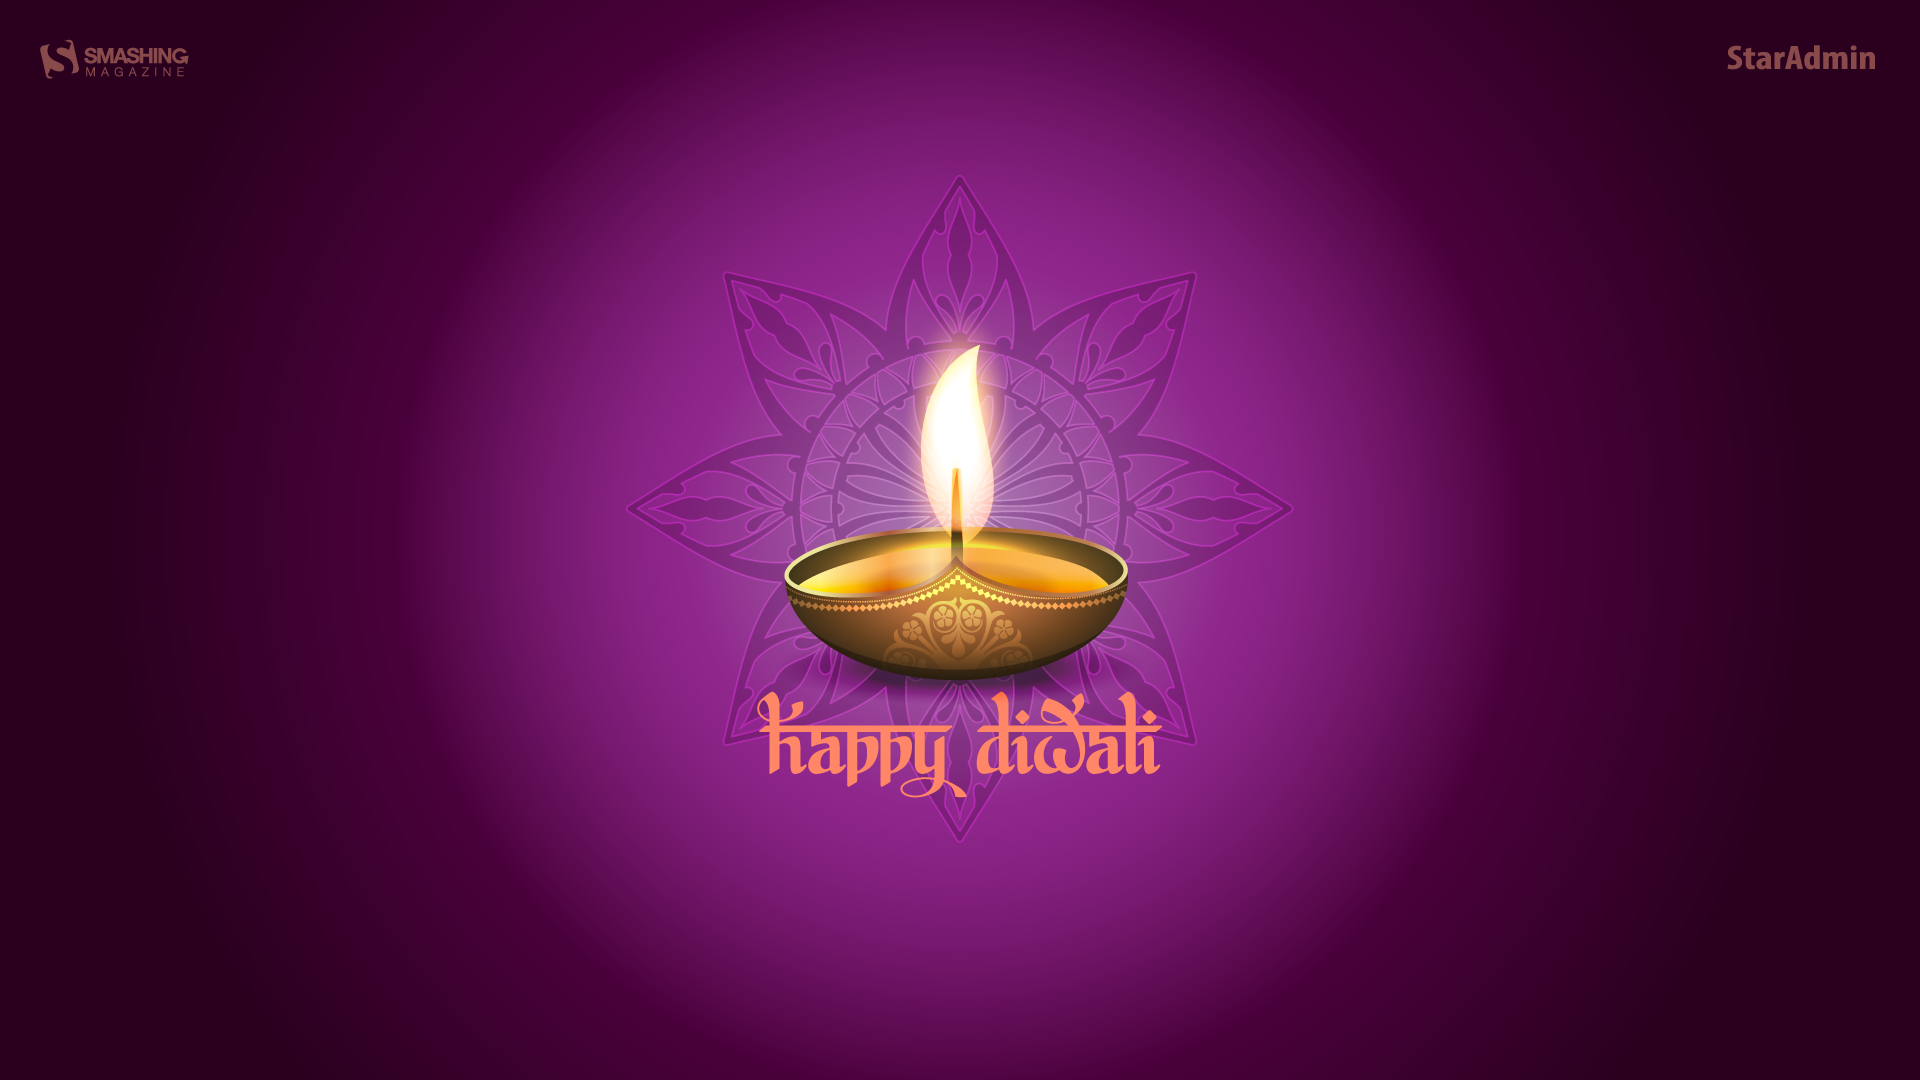 Happy diwali wallpaper hd deepavali desktop background - Hd wallpaper happy diwali ...